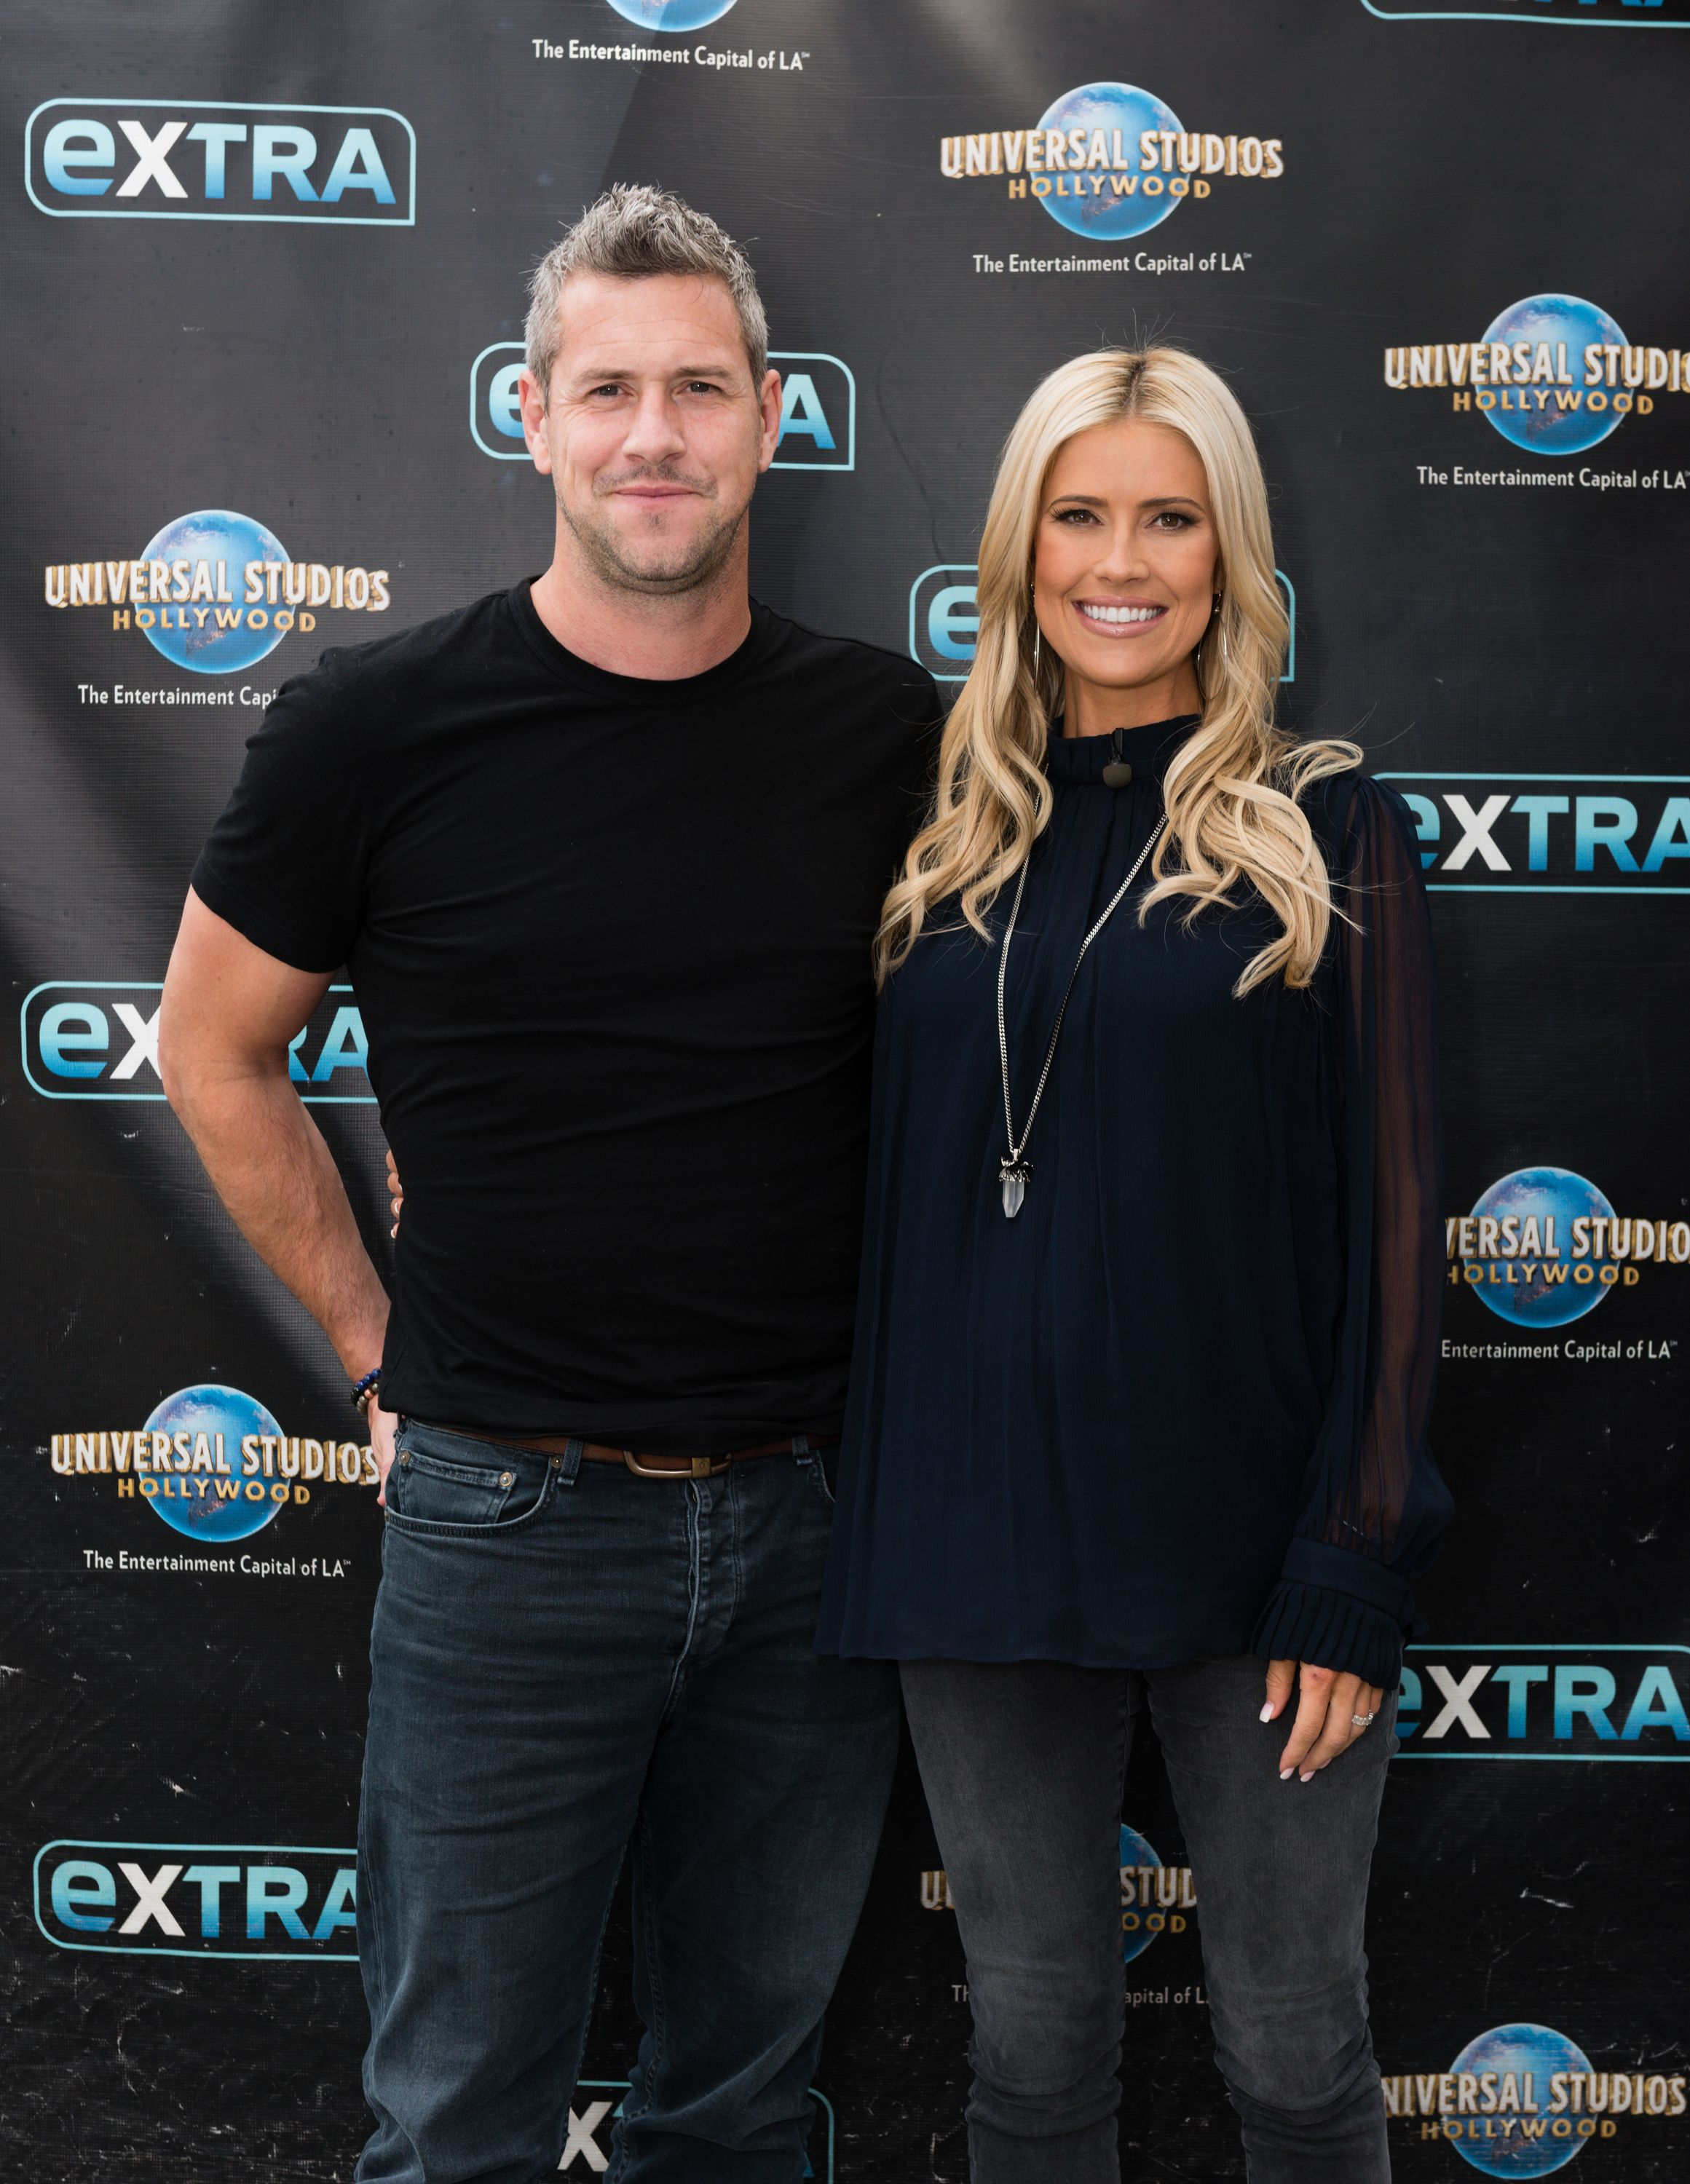 Christina Anstead and Ant Anstead at Universal Studios Hollywood in 2019 | Source: Getty Images